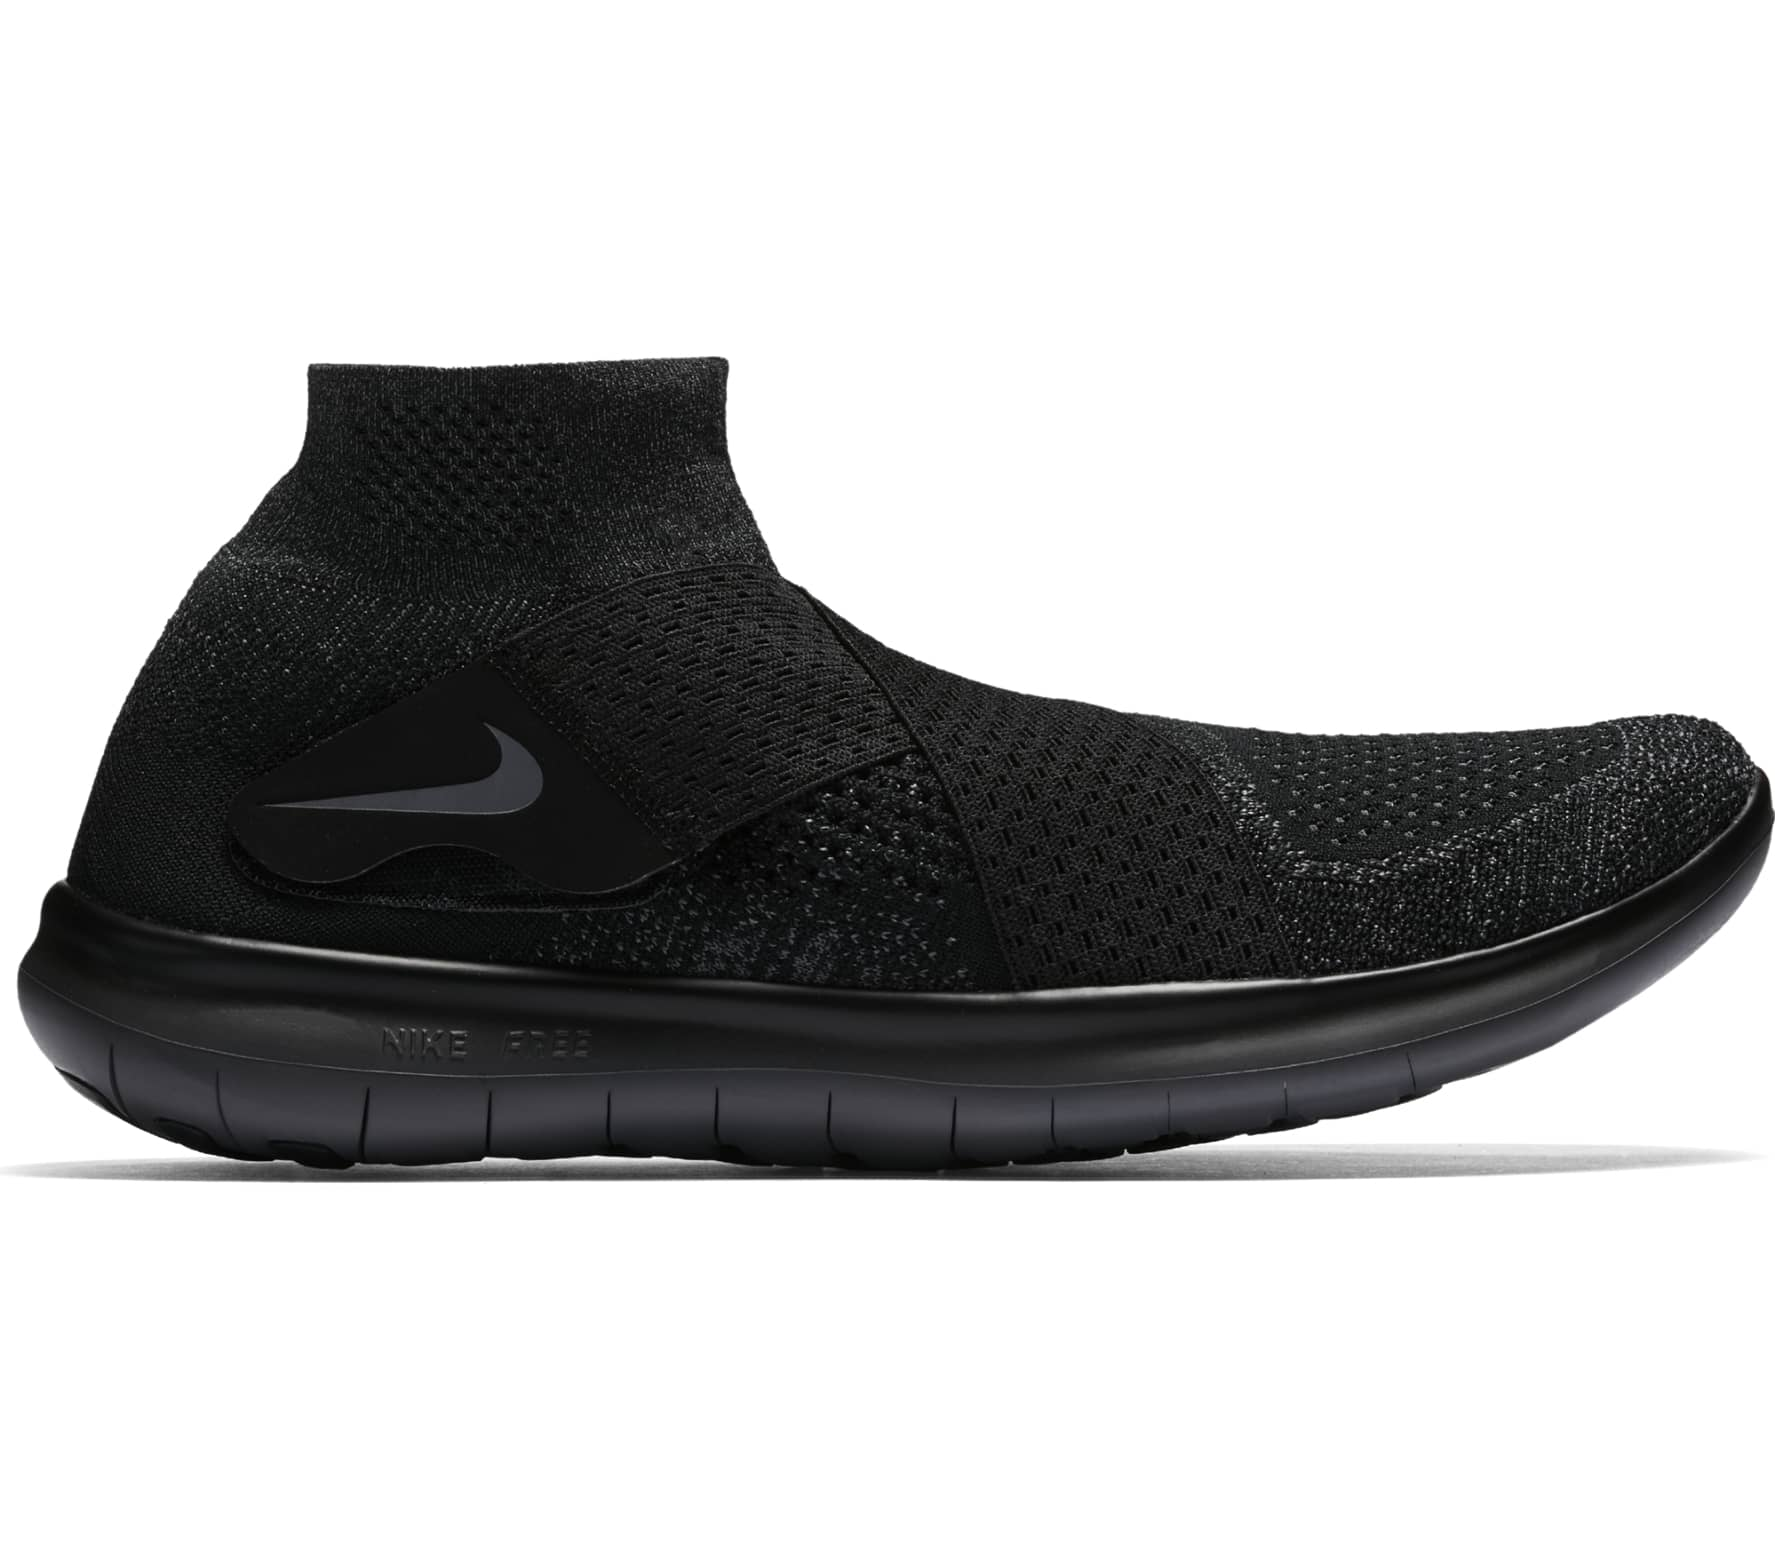 100% authentic 7299e 6fa6a Nike - Free RN Motion Flyknit 2017 men s running shoes (black)